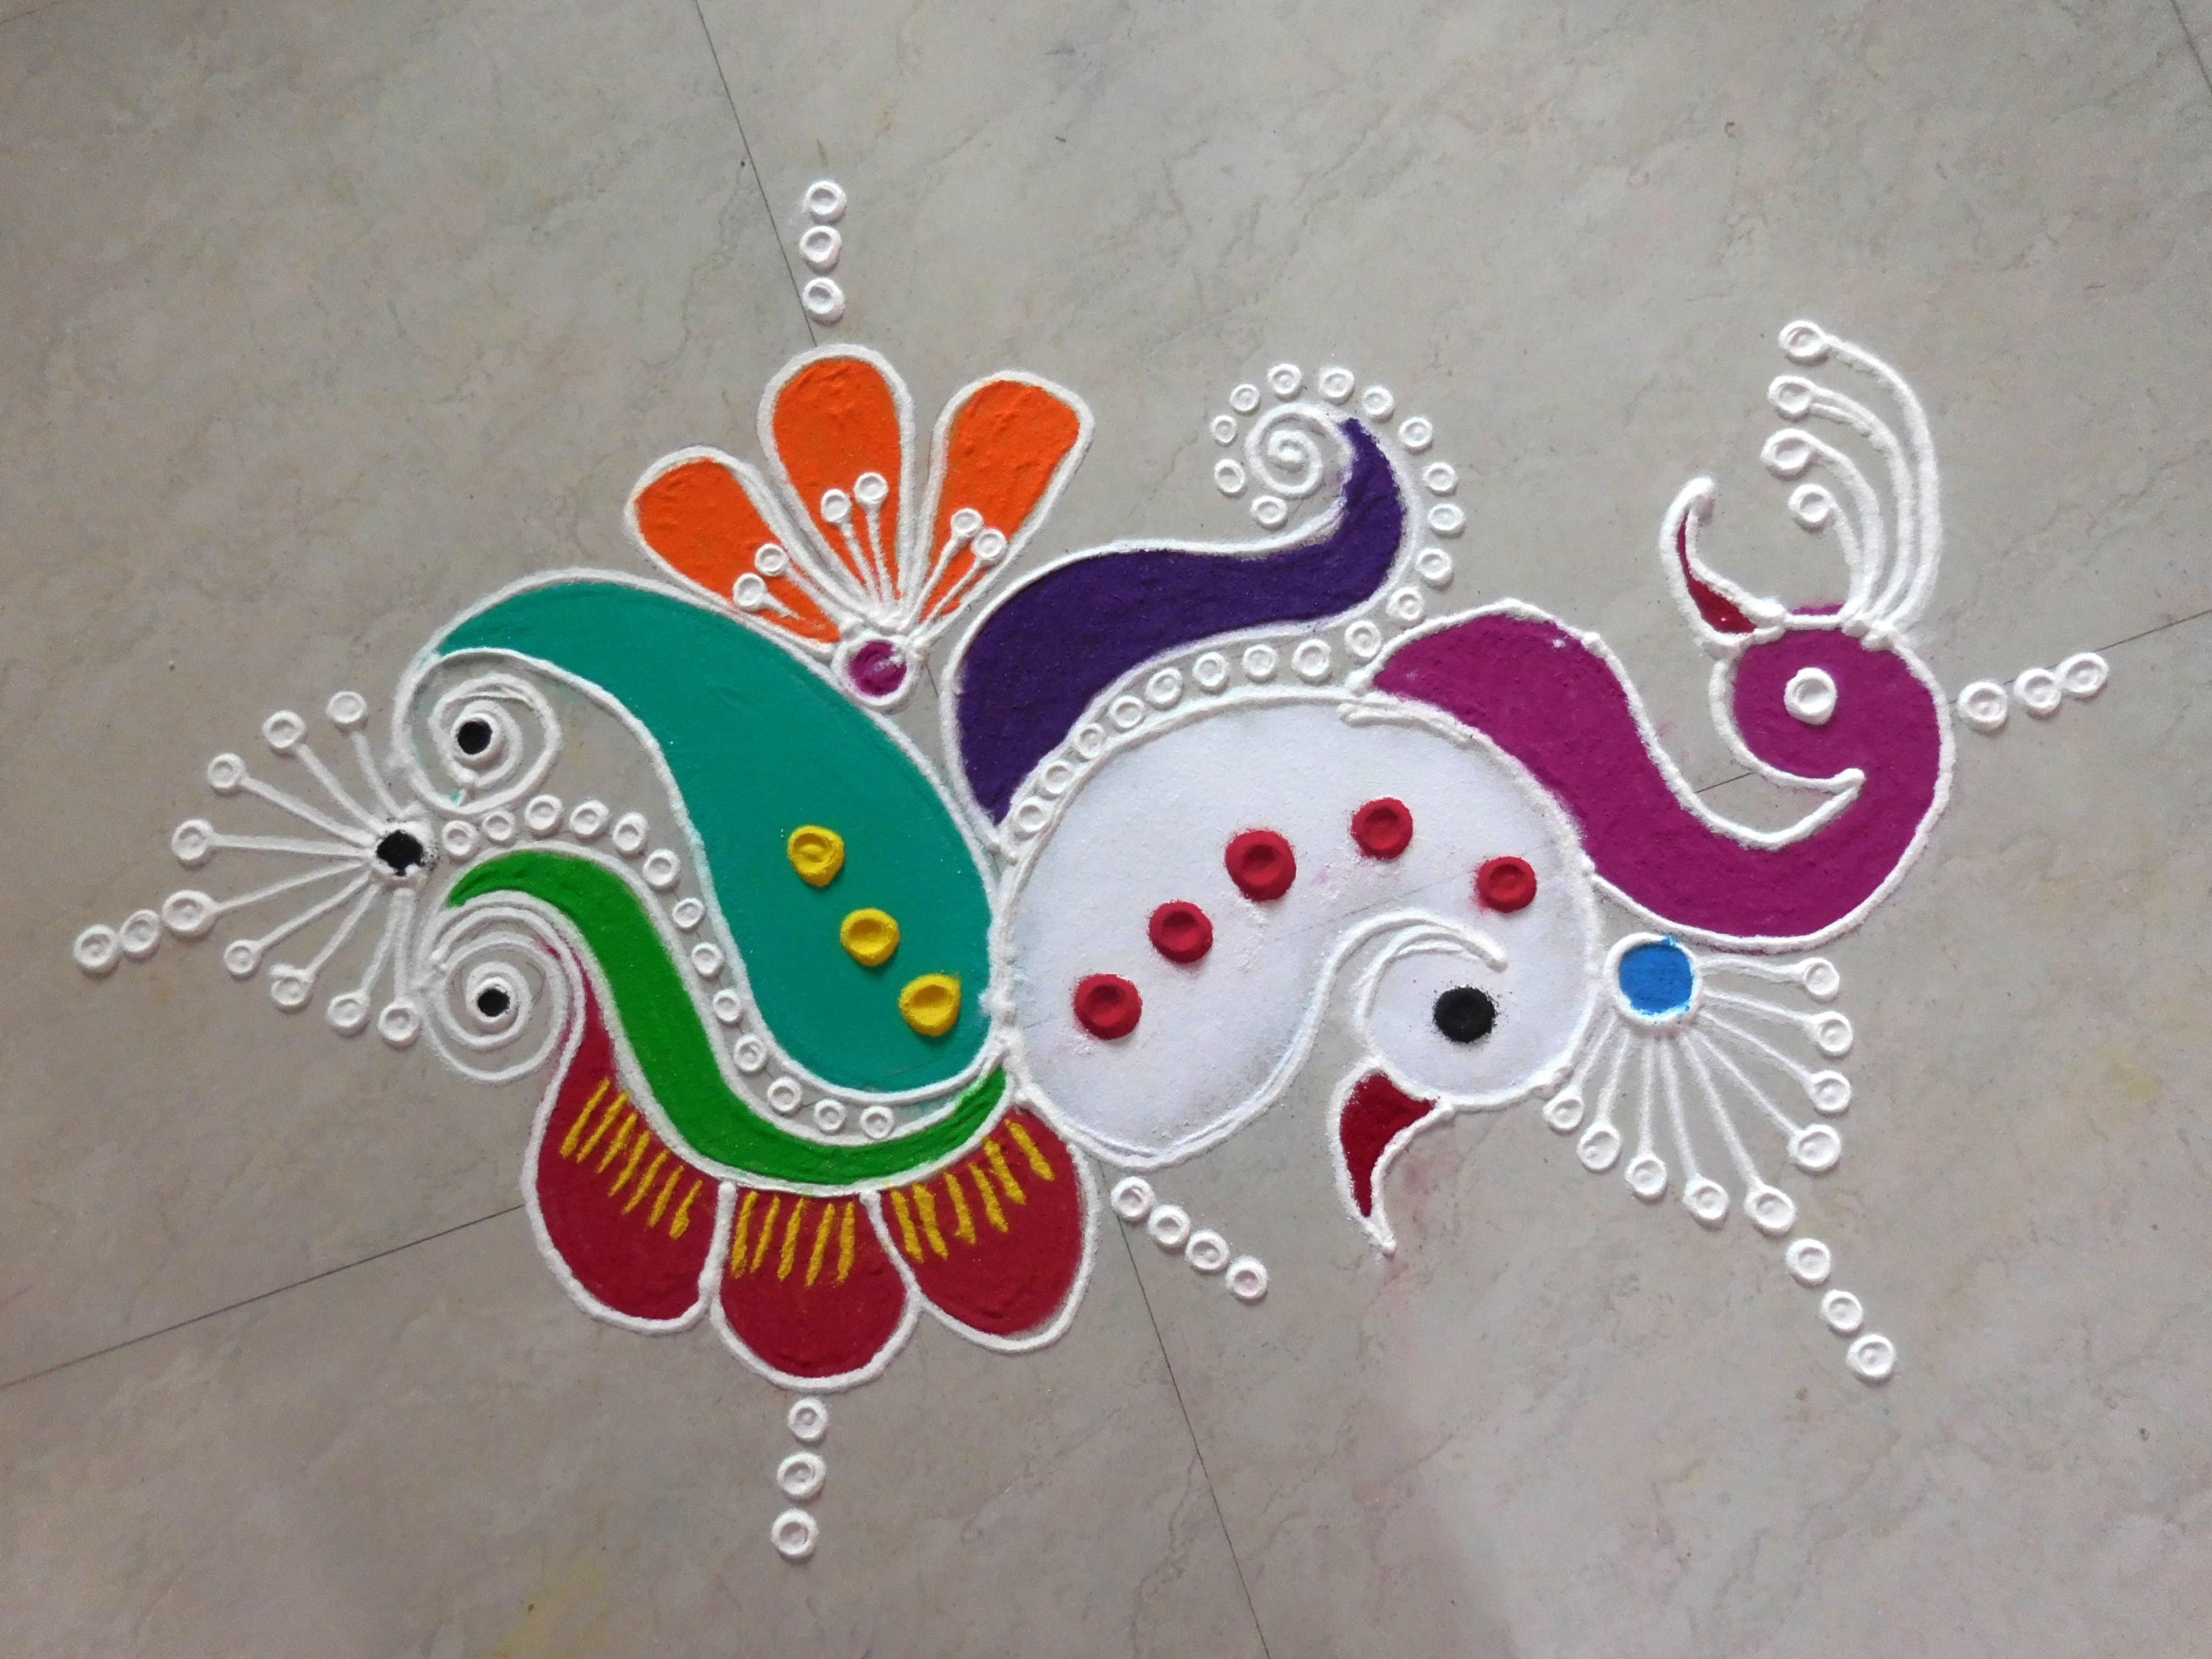 Peacock Rangoli Design for Diwali with Modern Theme